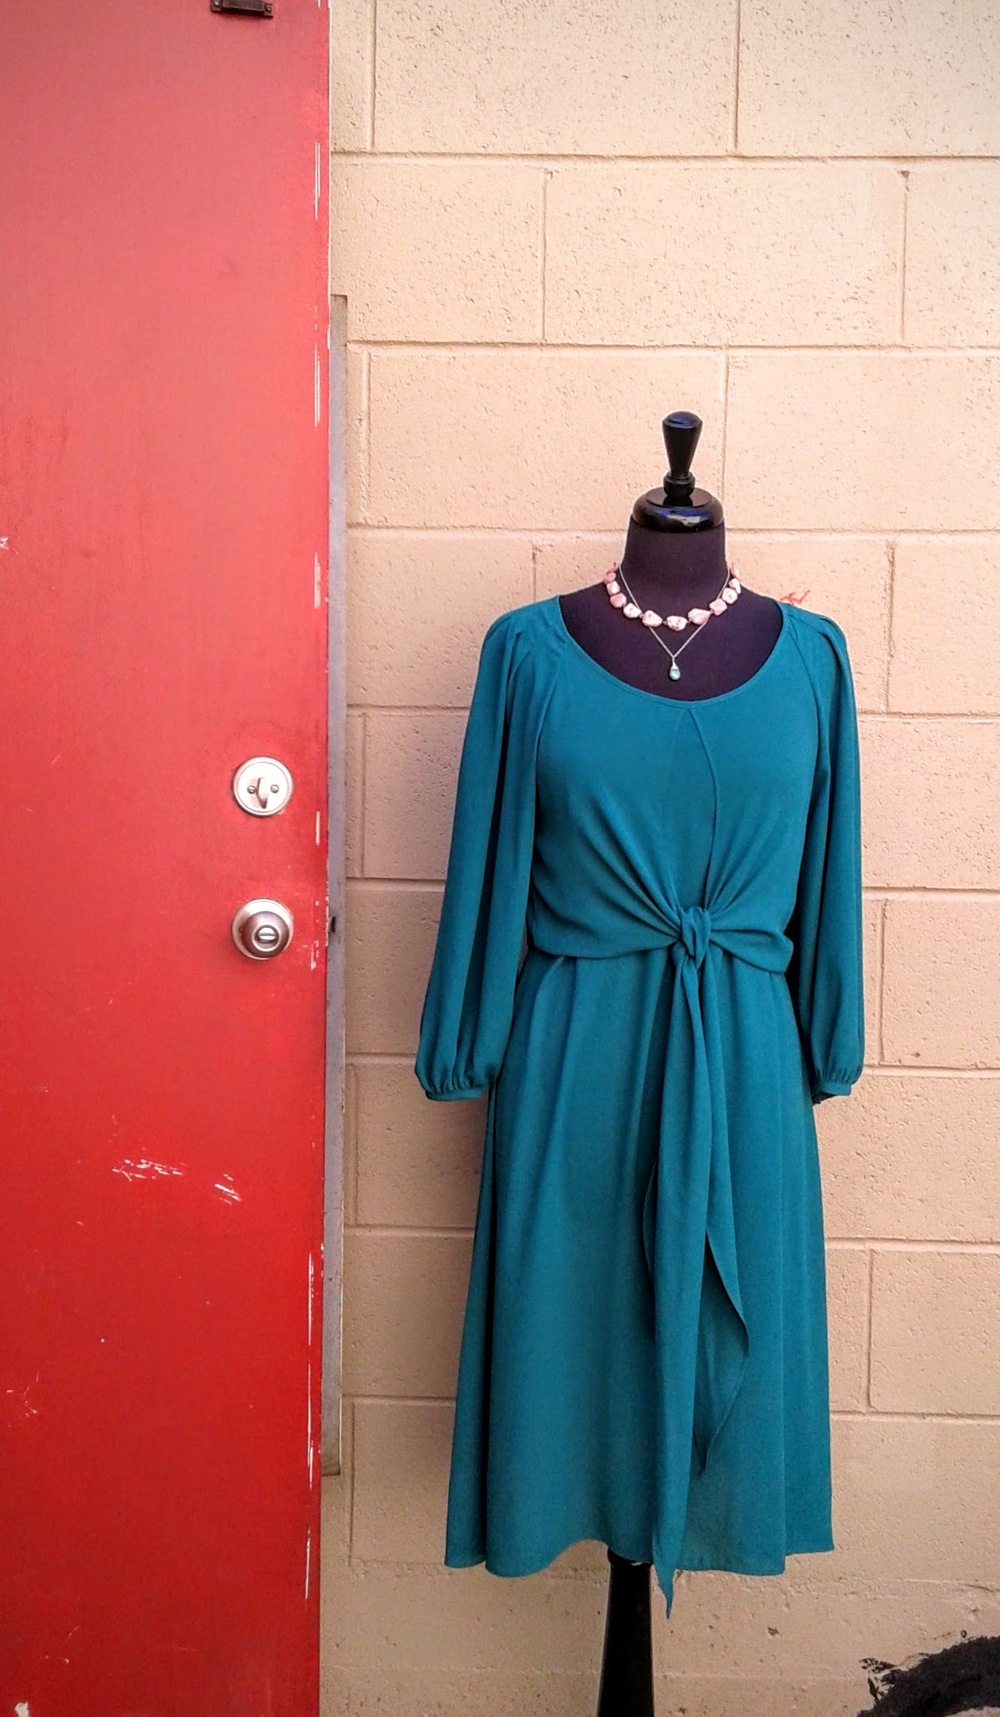 Maeve dress; Size M, $42